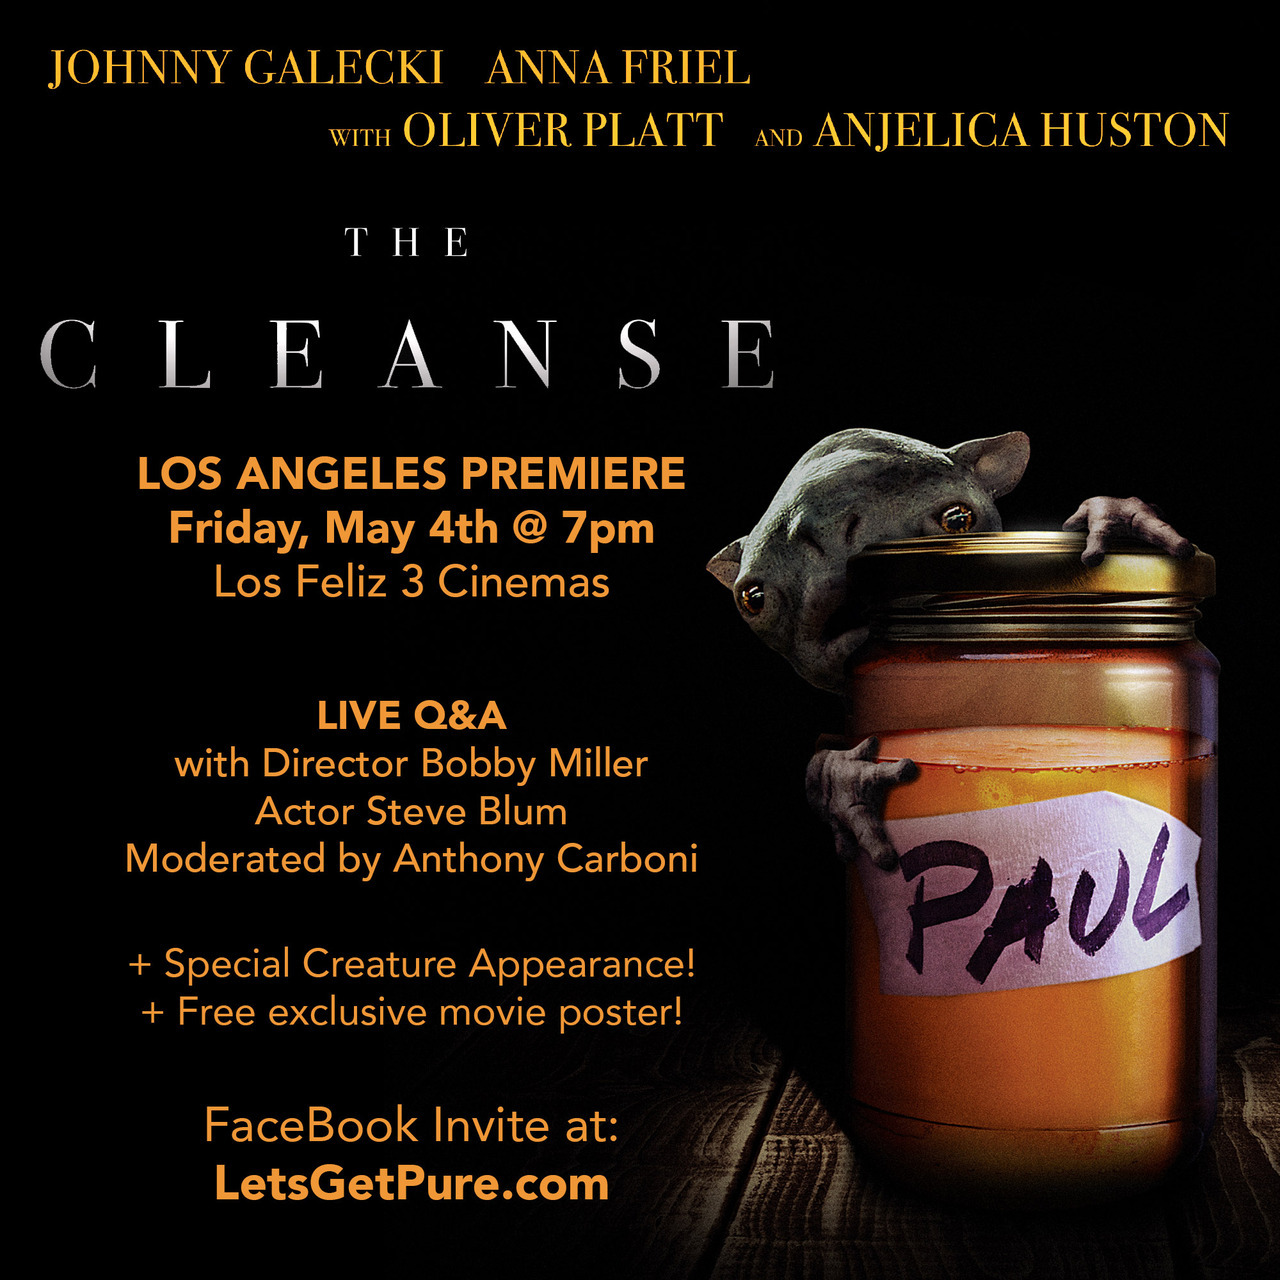 LOS ANGELES! The Cleanse has some exciting things planned! See above! Did I mention I'm LA premiering my short END TIMES too?  THIS is the screening you want, folks:  https://www.facebook.com/events/765160643694242/